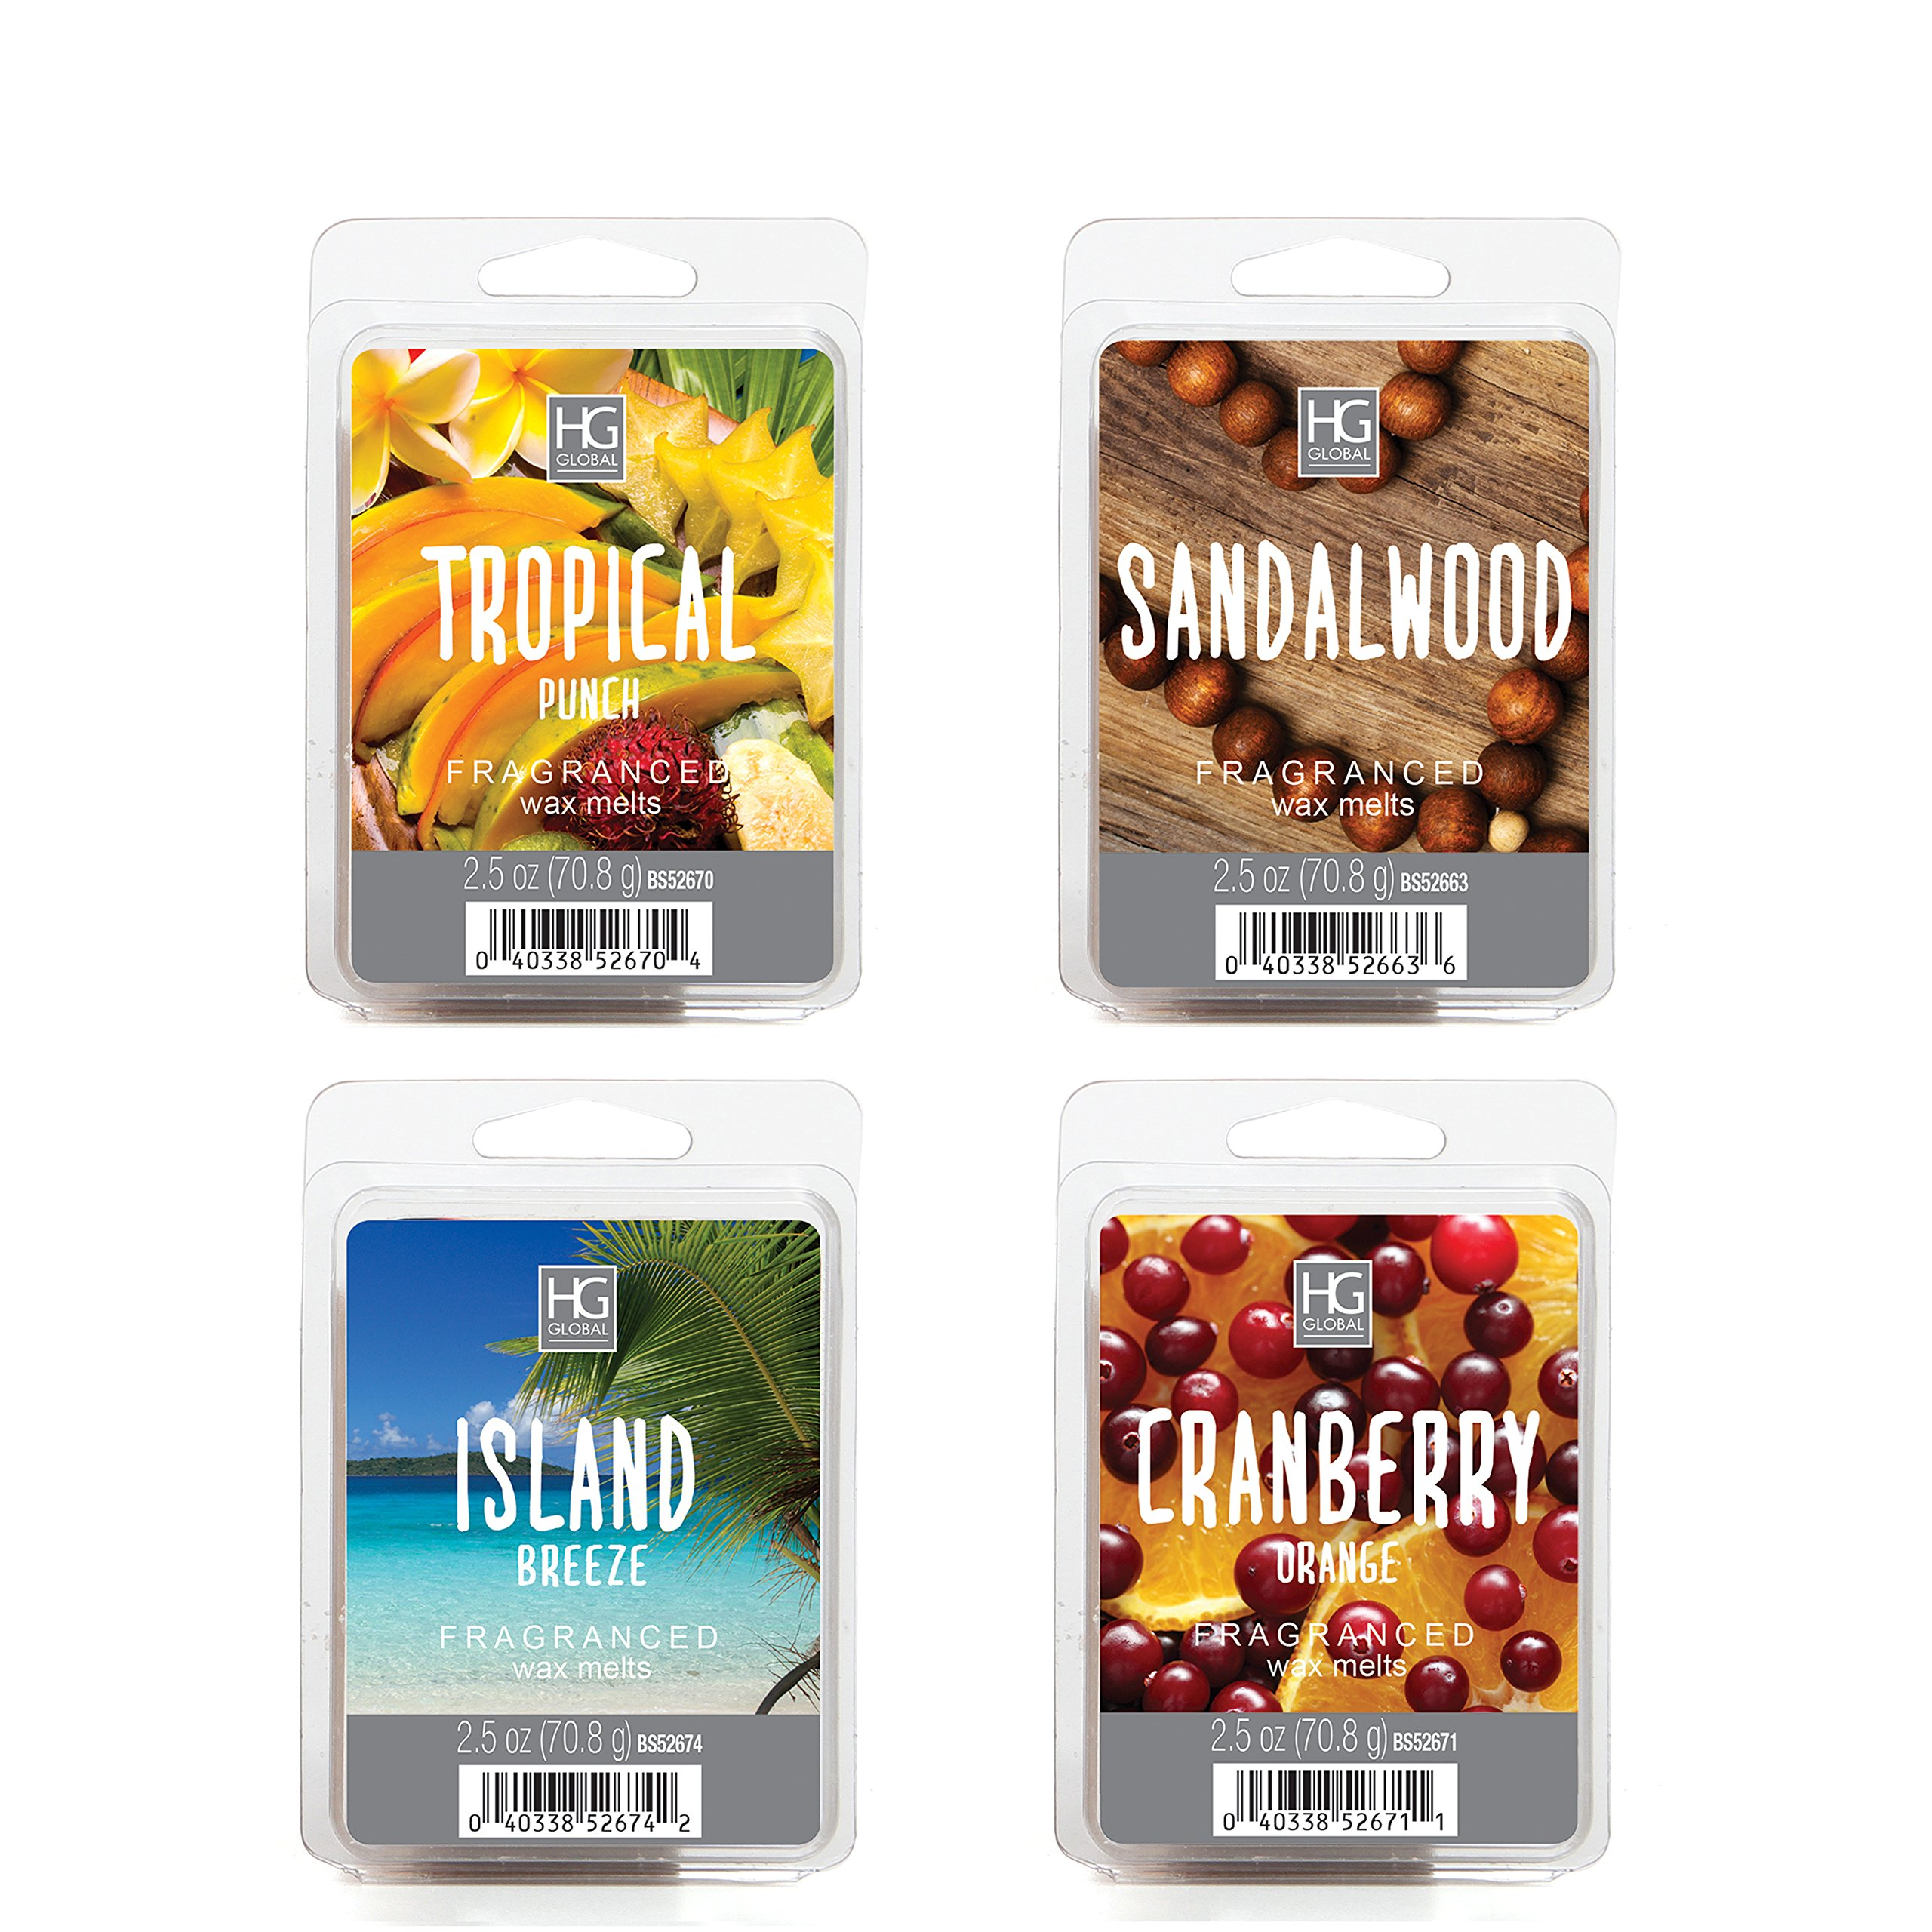 Hosley 10 oz Assorted Scent Wax Cubes/Melts. Sandalwood, Island Breeze, Tropical Punch & Cranberry Orange. Infused with Essential Oils. Ideal GIFT Wedding Spa, Reiki, Meditation O3